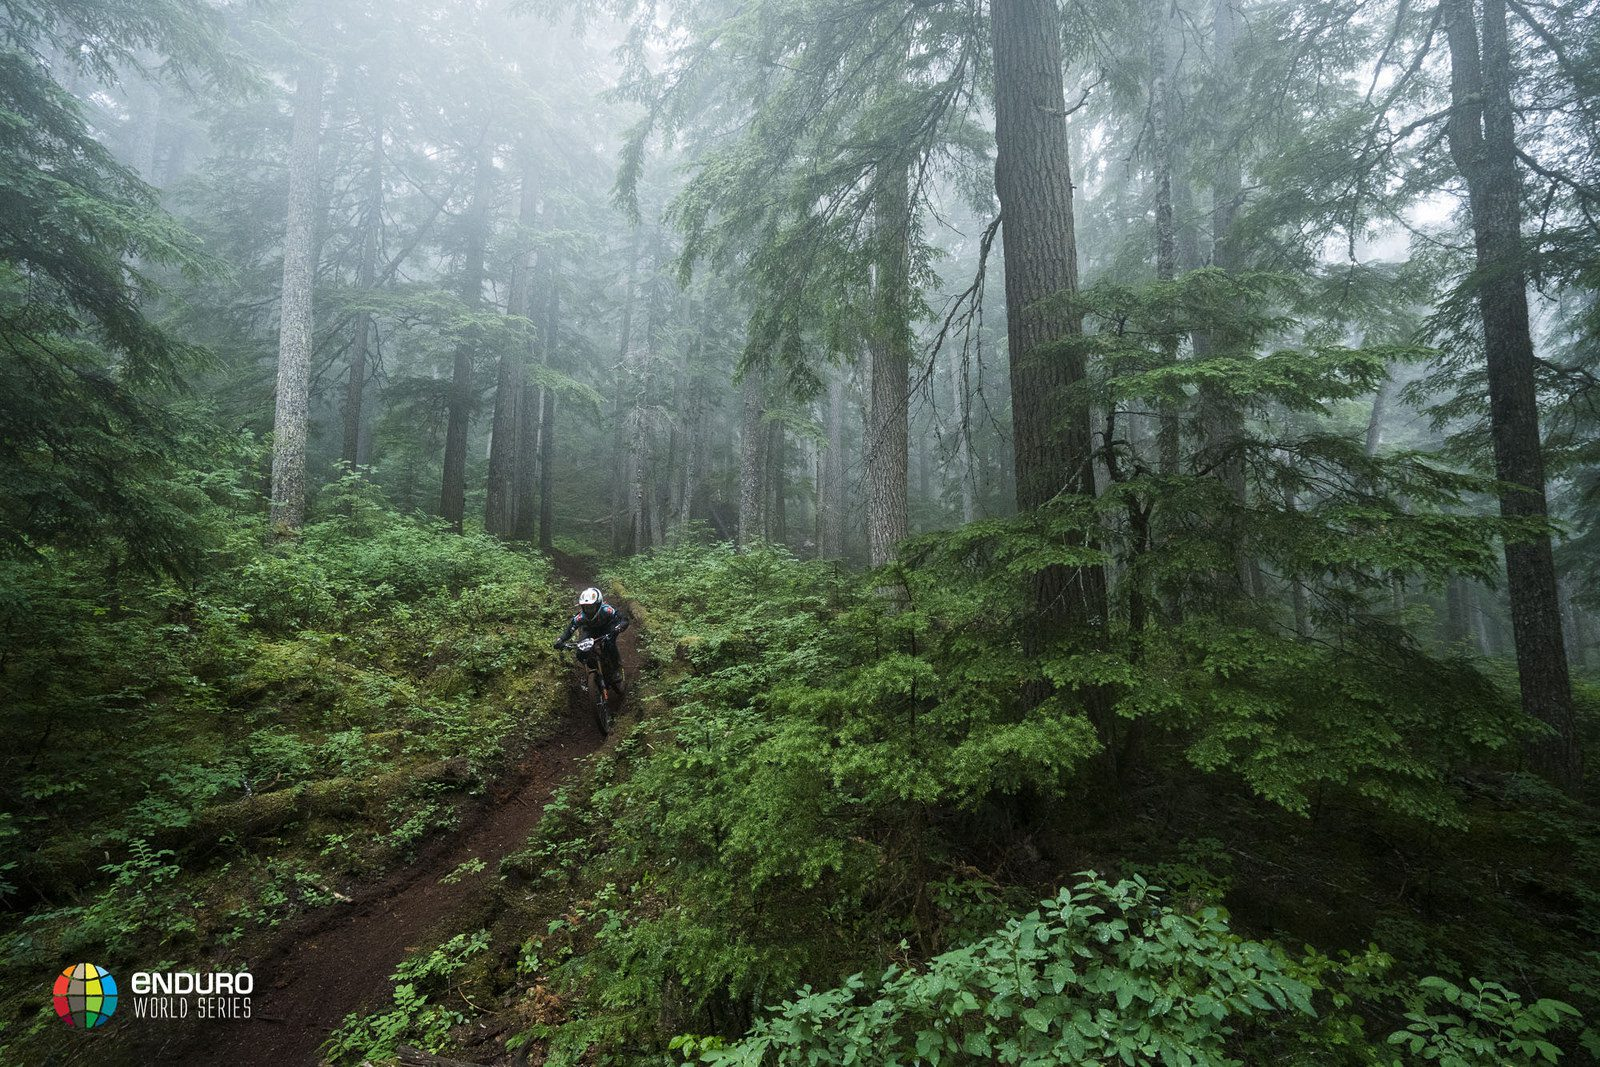 EWS Whistler 2017. Image: Enduro World Series